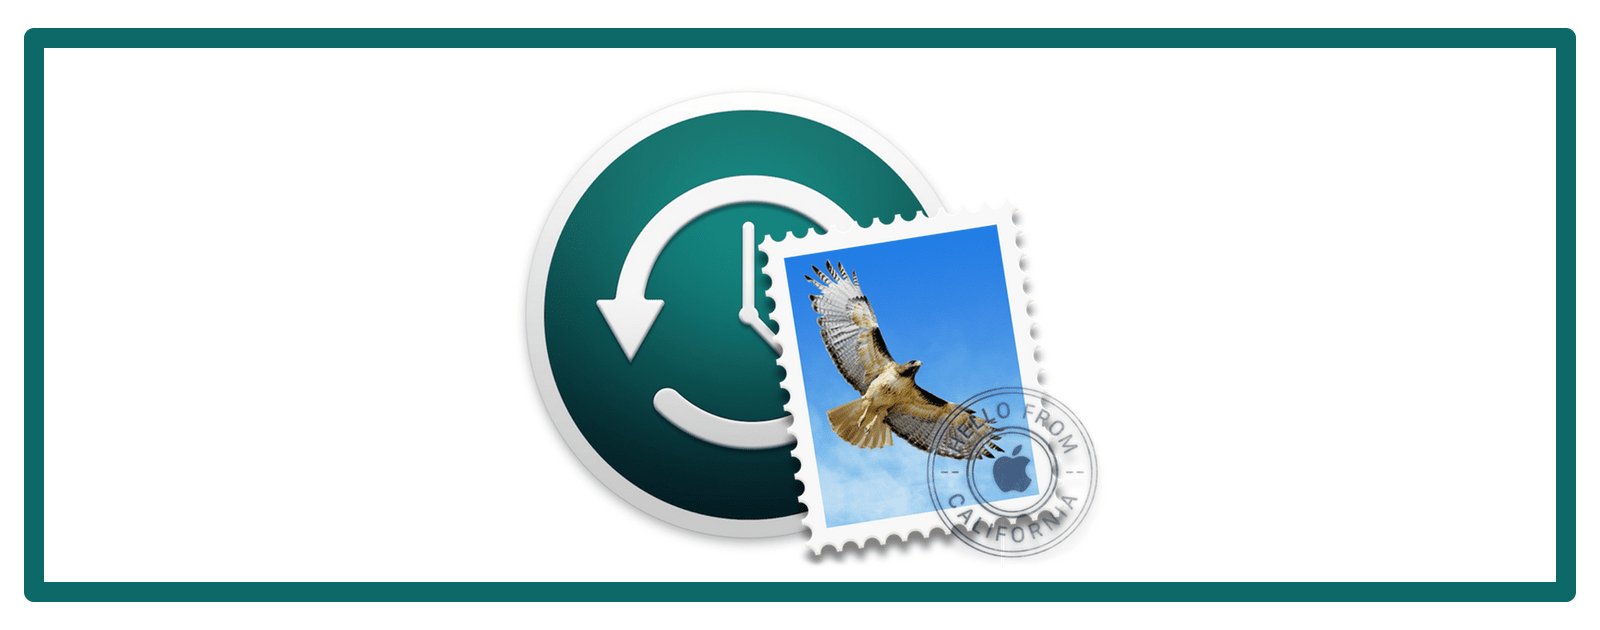 Macos: Use Time Machine To Recover Lost Email  The Mac intended for Mail Icon Missing From Iphone